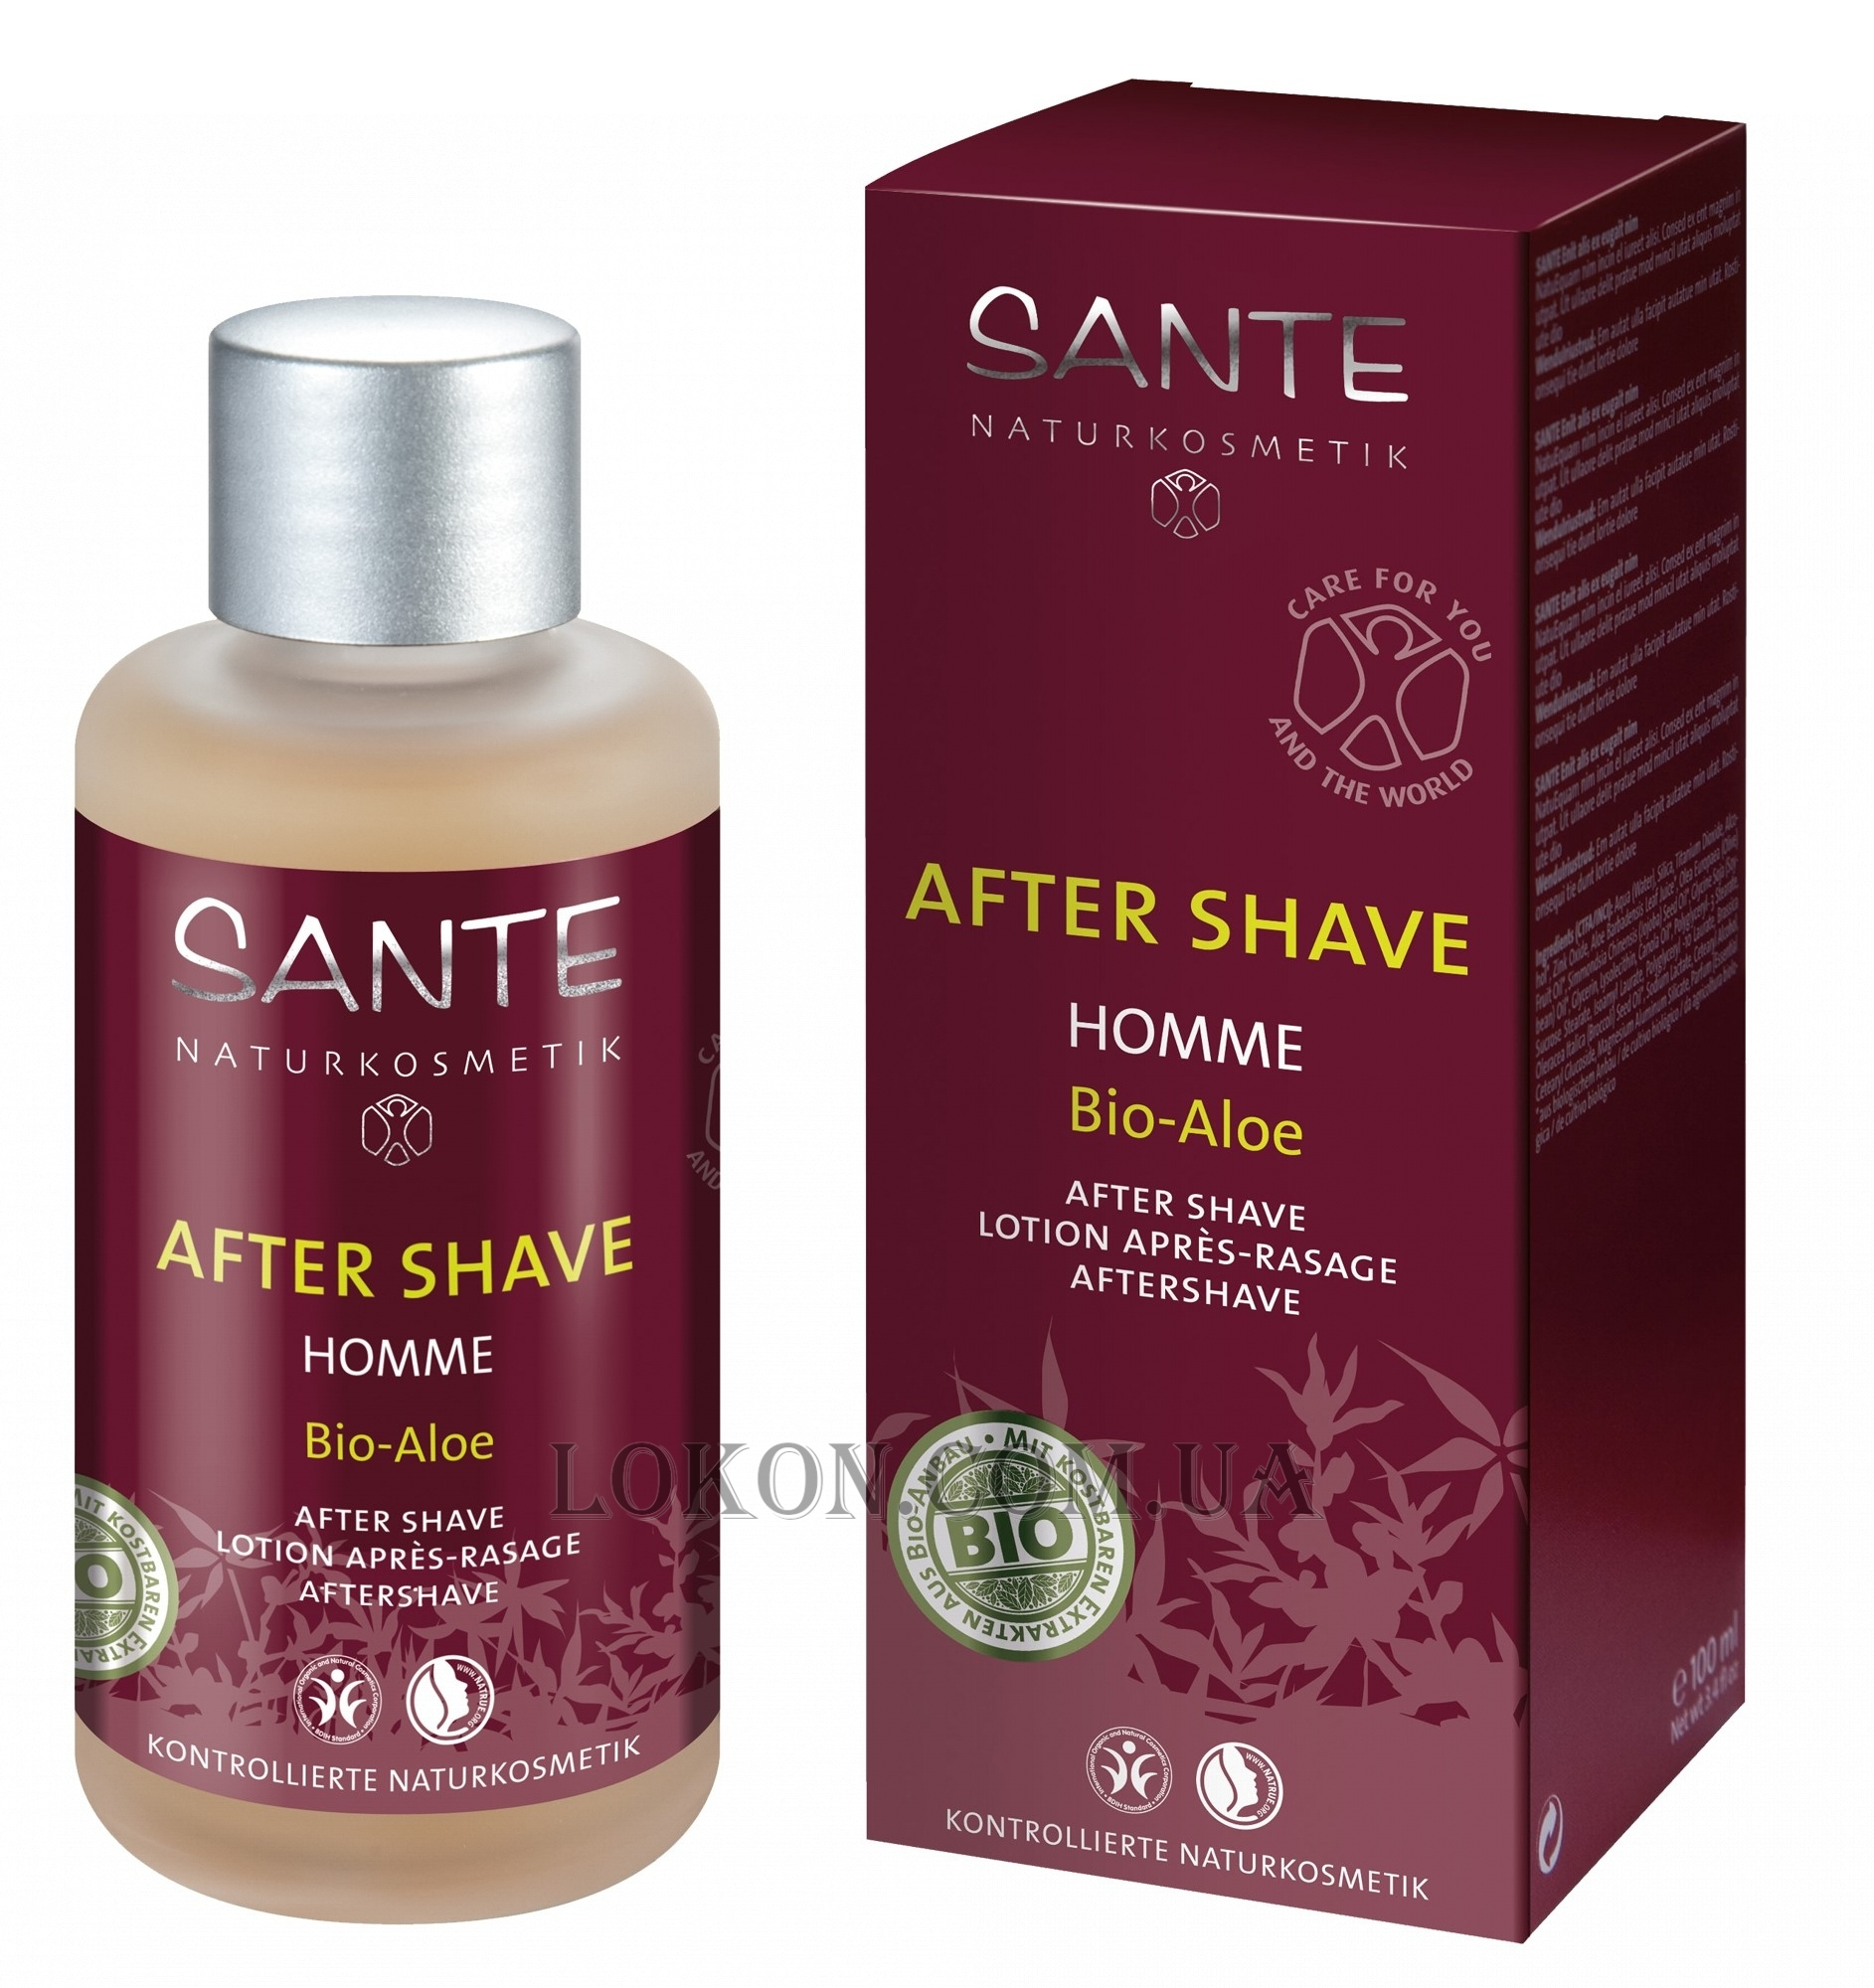 SANTE Homme Bio-Aloe Lotion After Shave - Лосьон после бритья